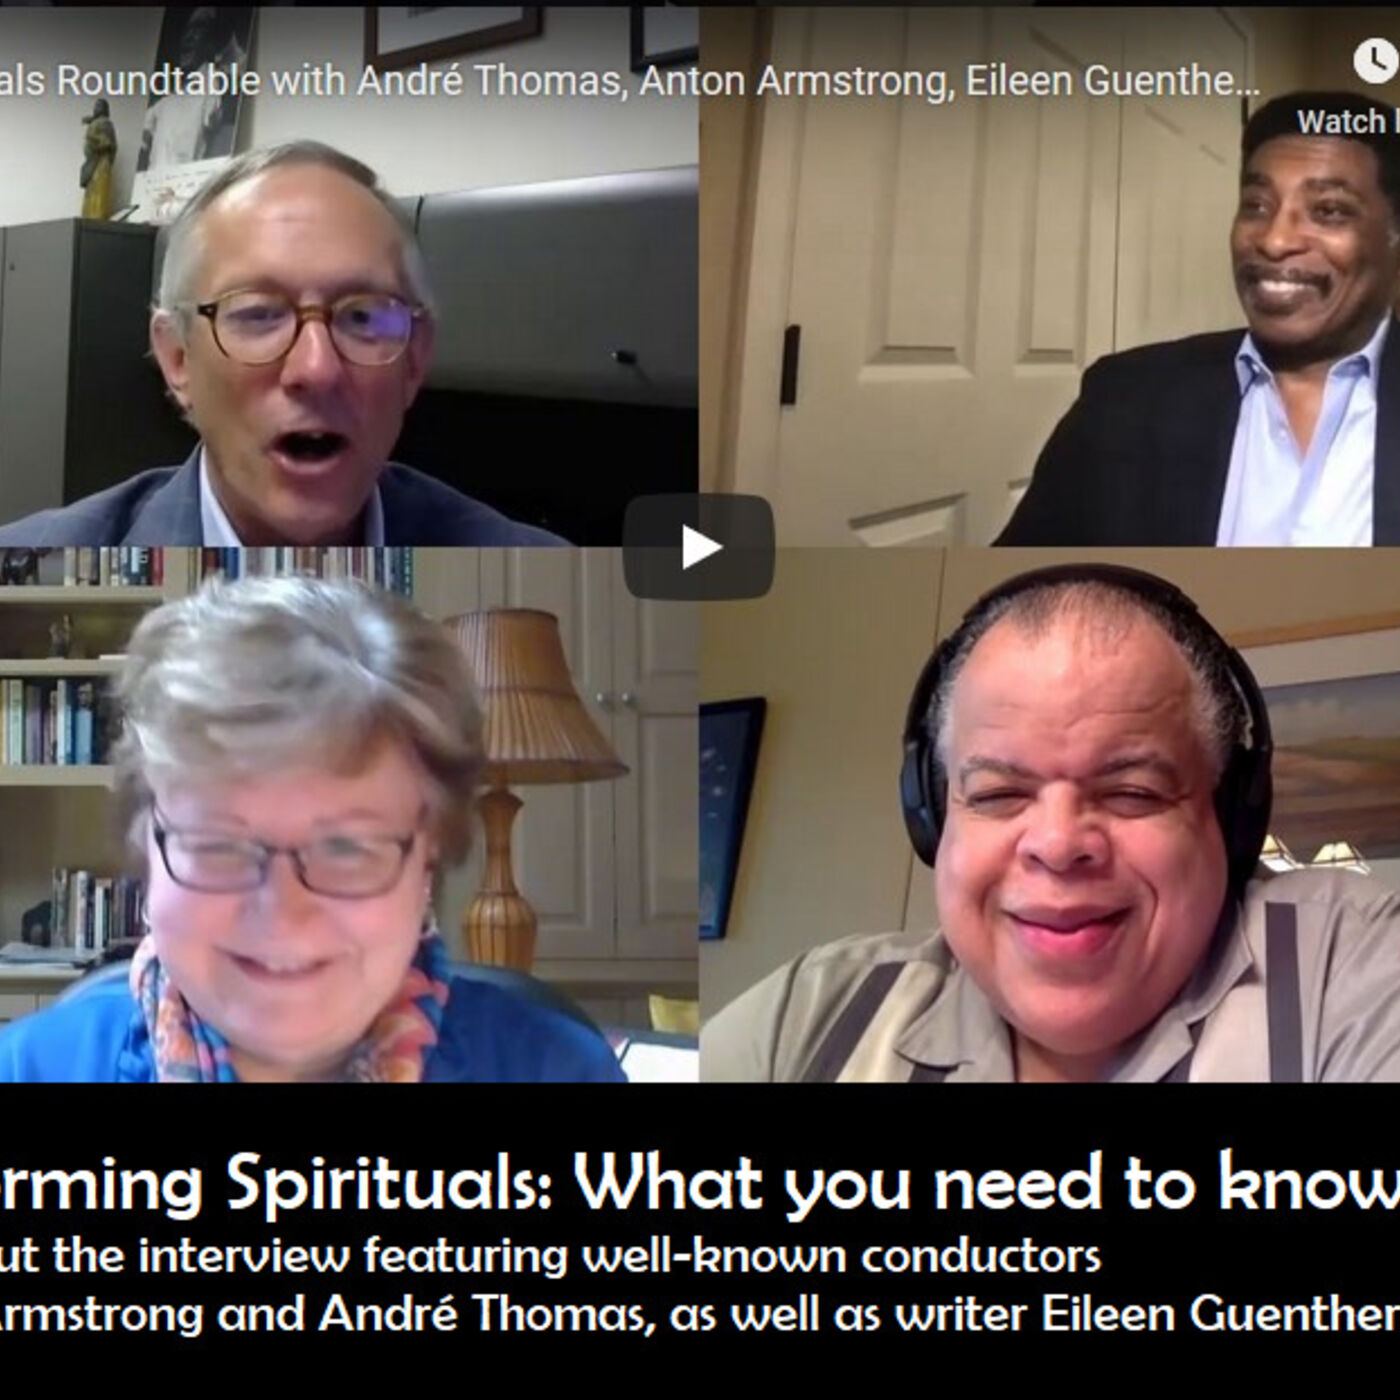 Performing Spirituals: What you need to know